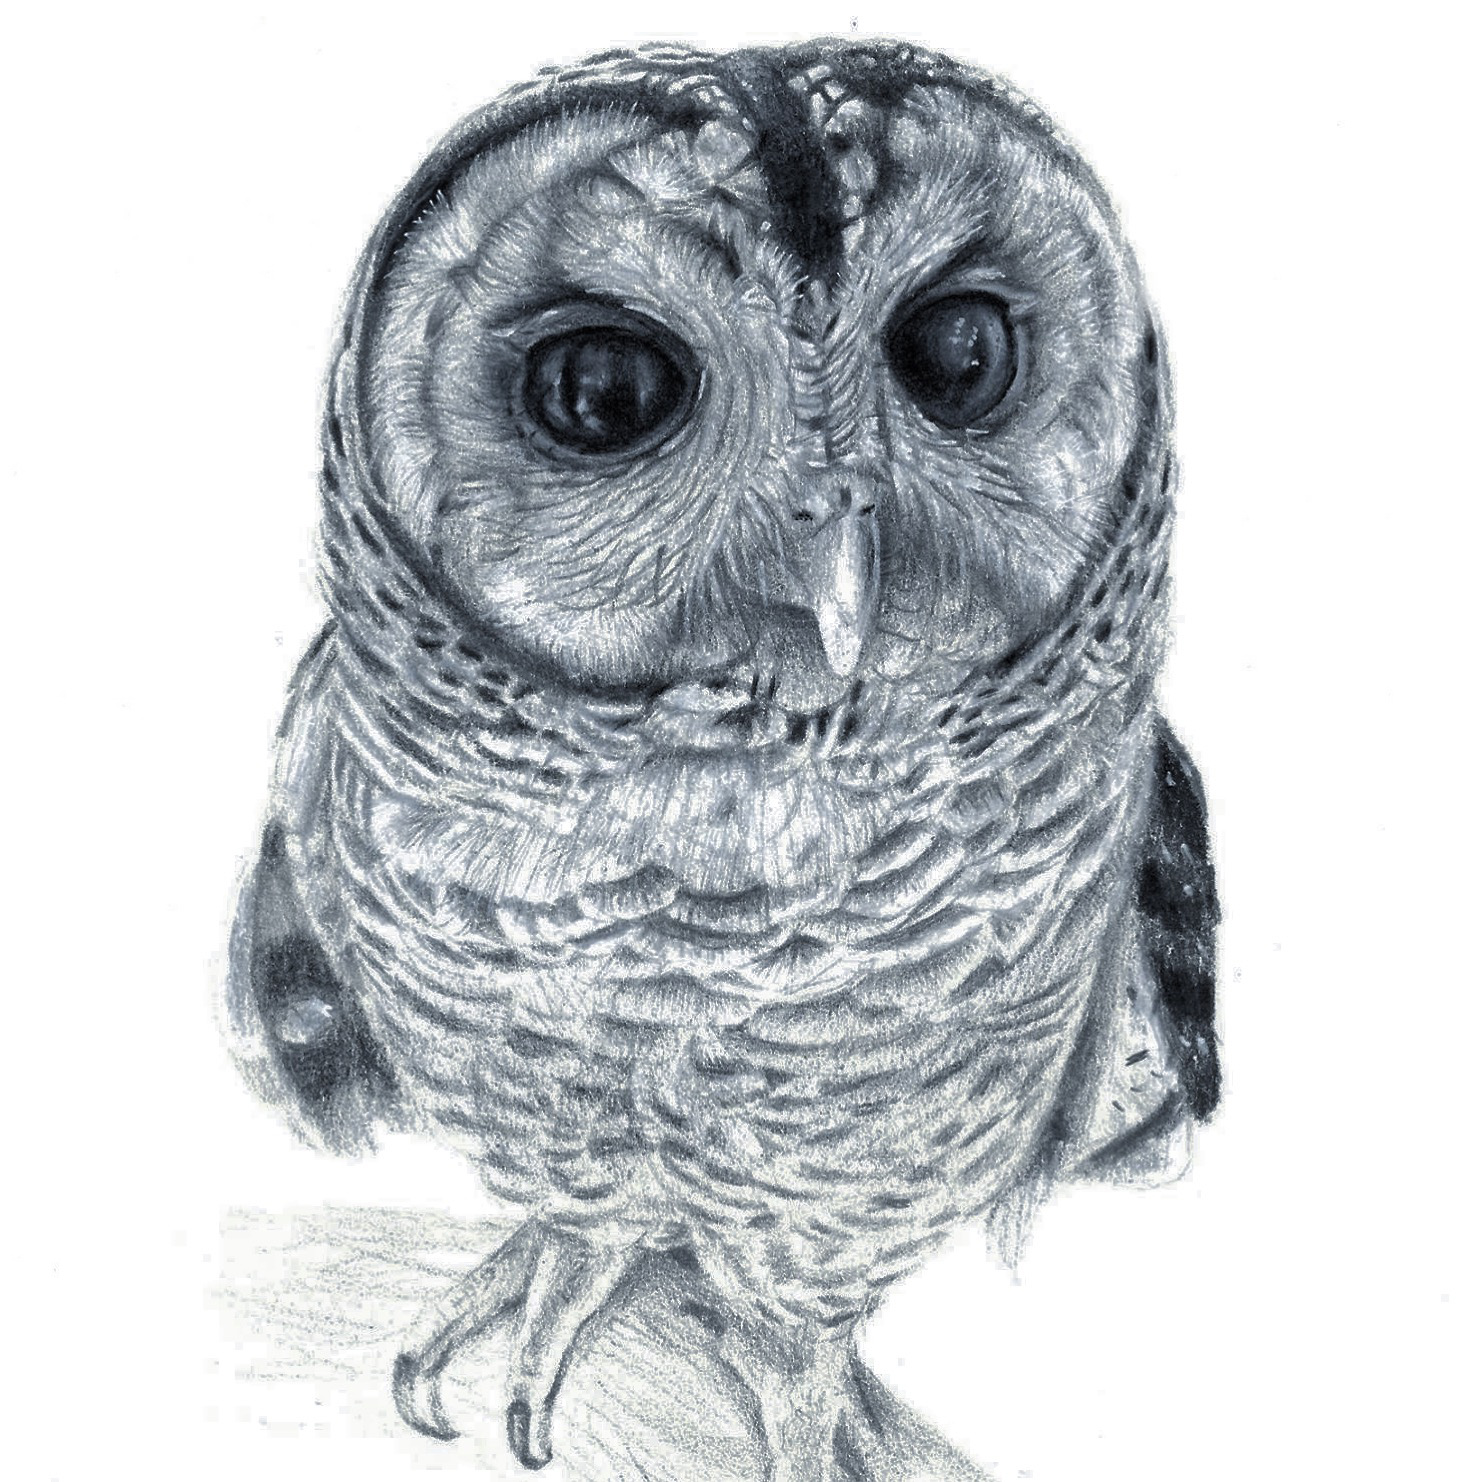 Chaco owl study , 2017, graphite on paper, 25x35cm.